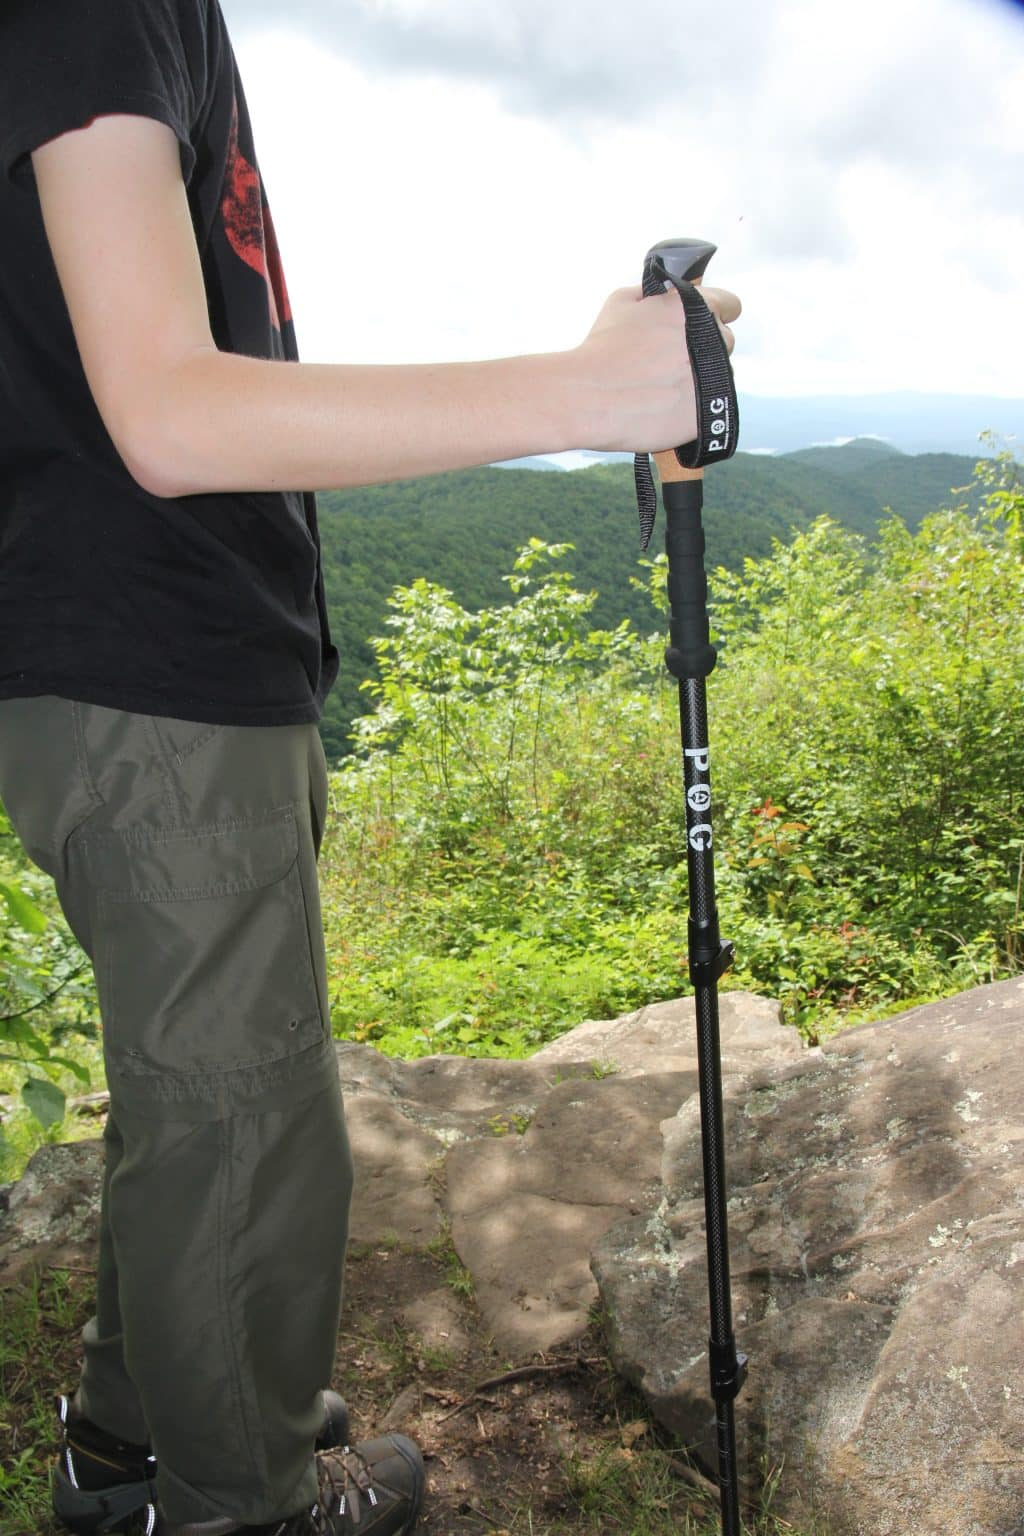 lightweight carbon trekking pole and hiking stick proper use